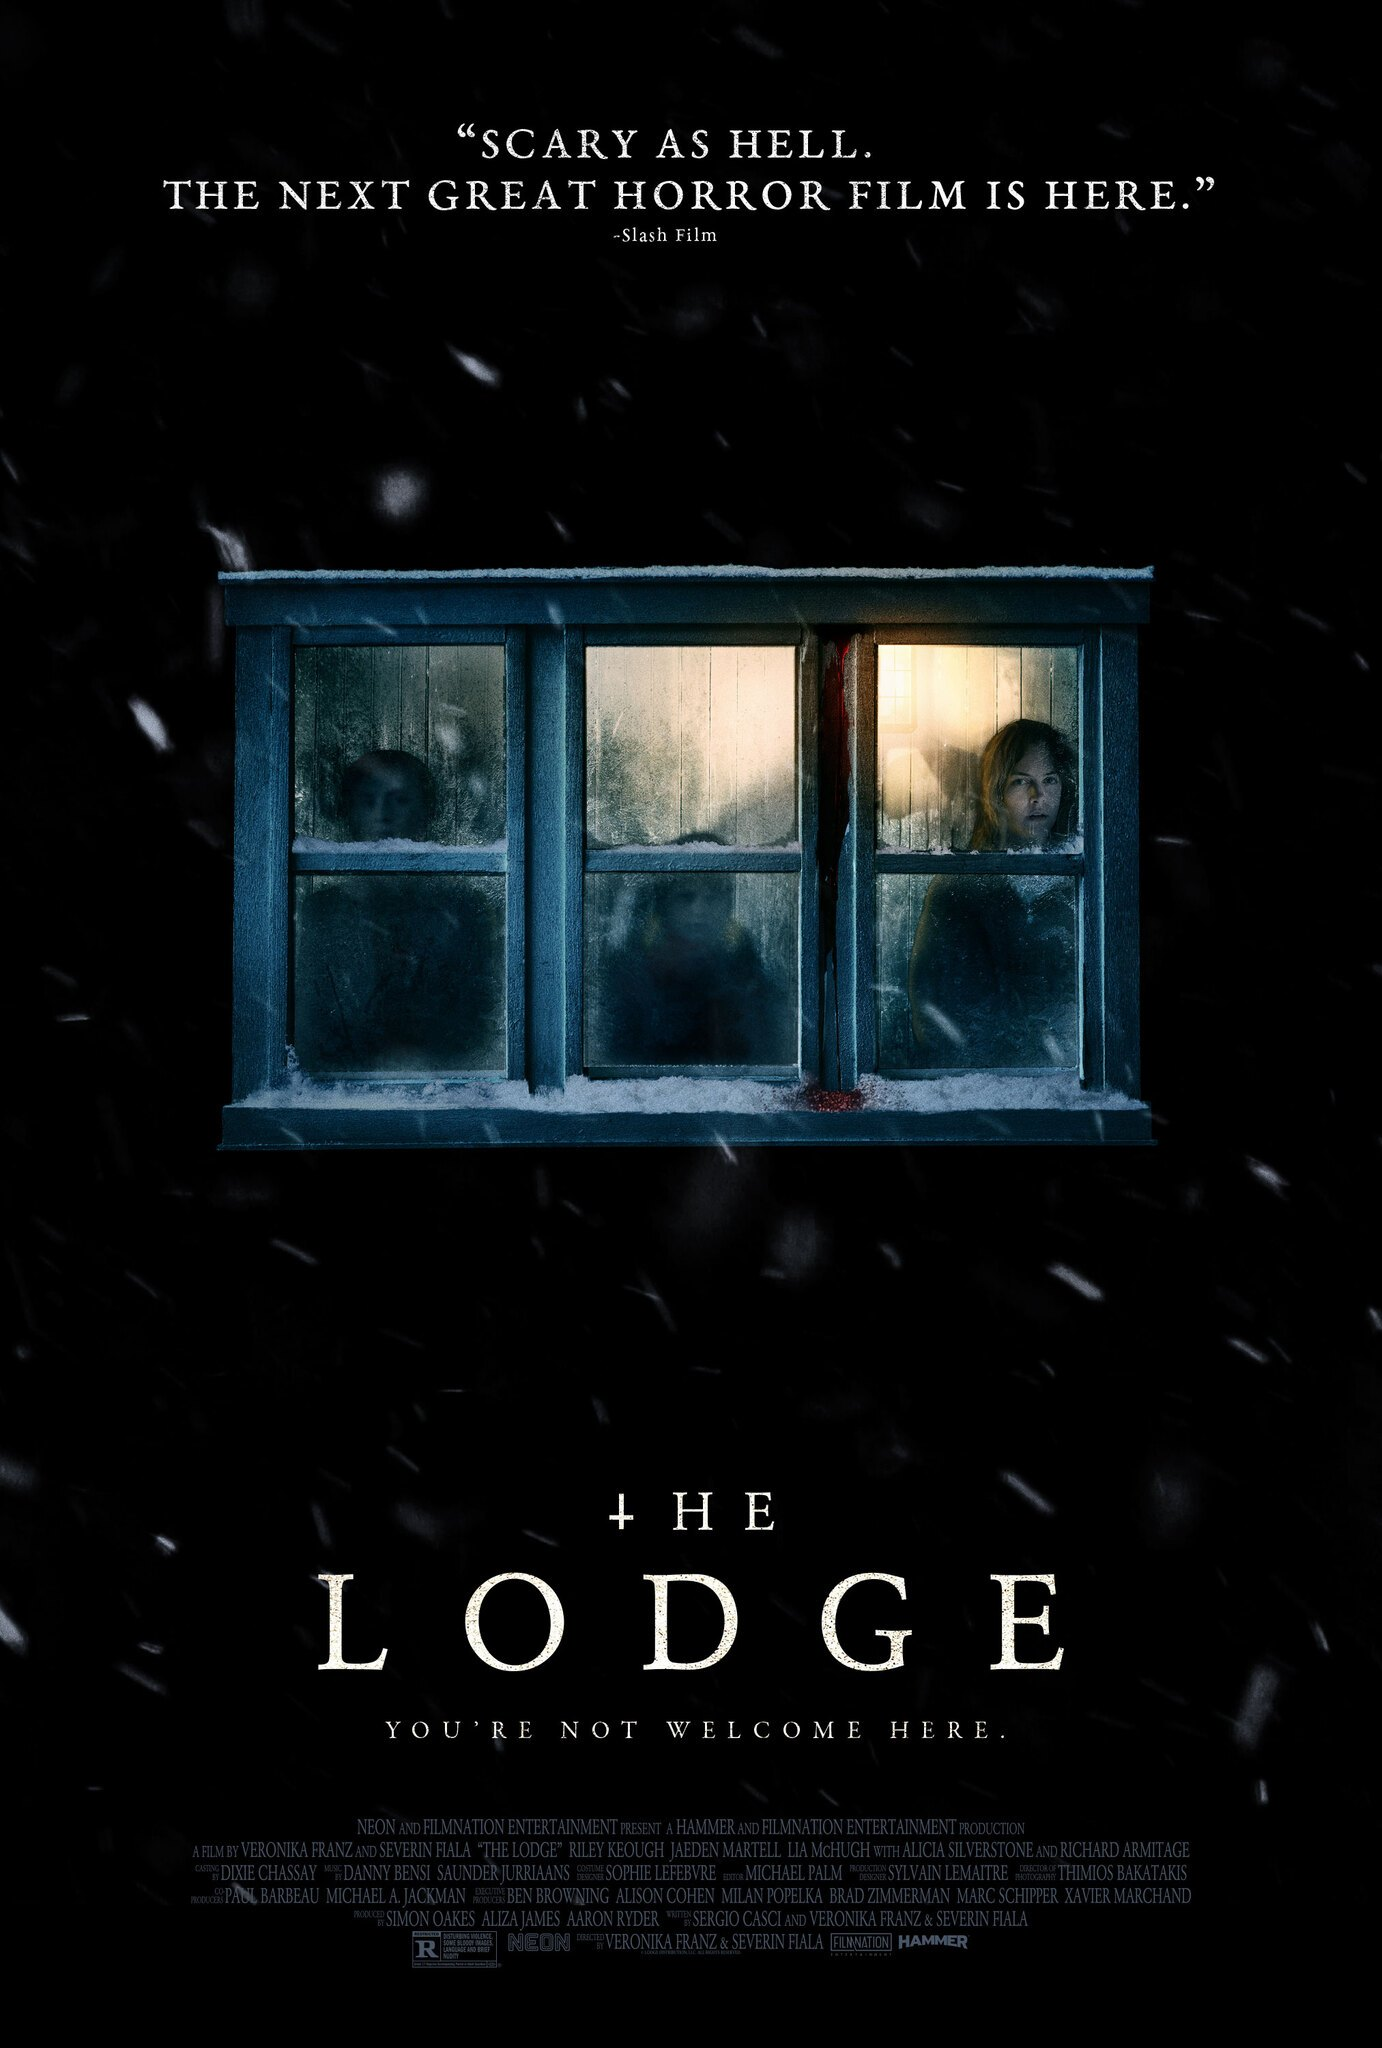 the lodge poster 1